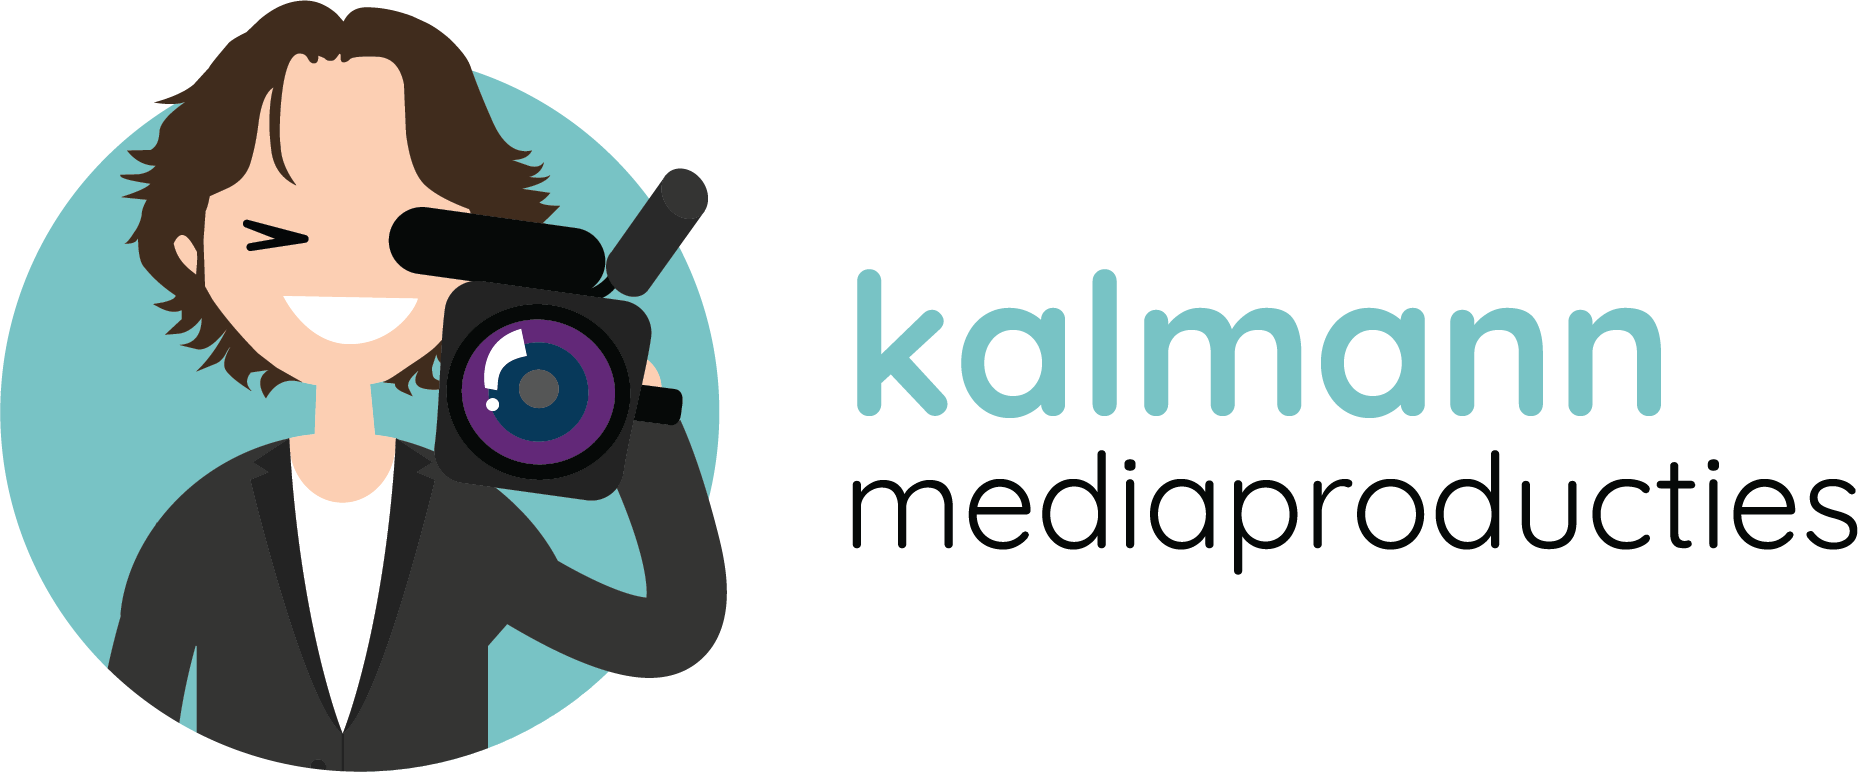 Kalmann mediaproducties